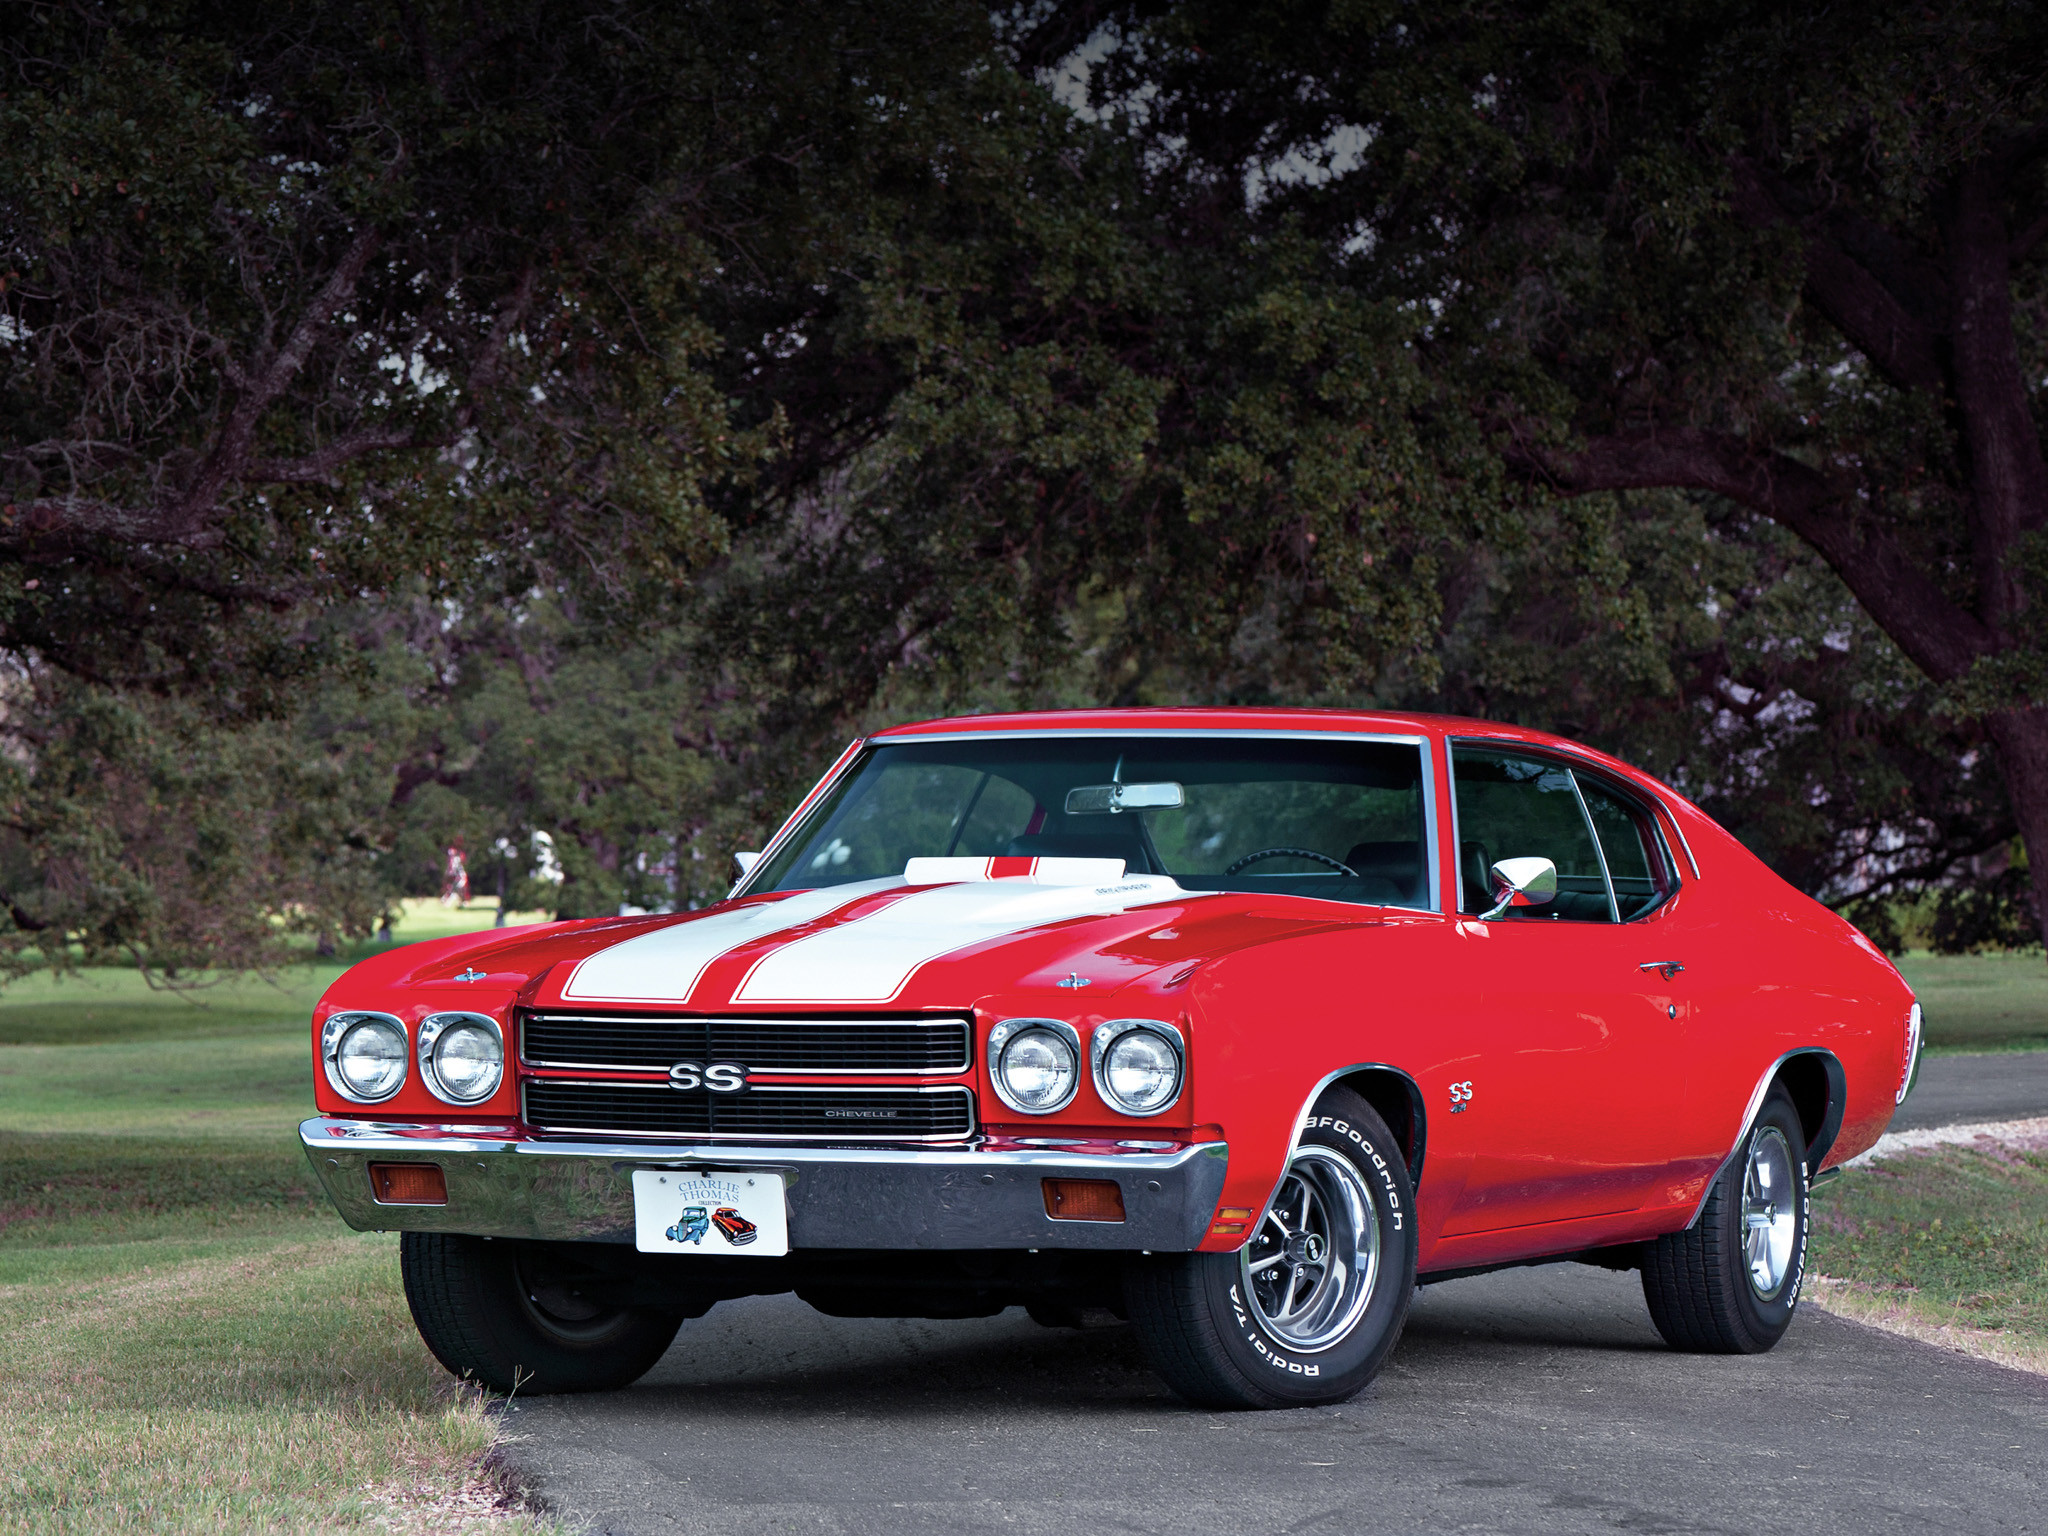 1970 Chevrolet Chevelle SS 454 LS6 Hardtop Coupe muscle classic s-s r  wallpaper | | 149070 | WallpaperUP